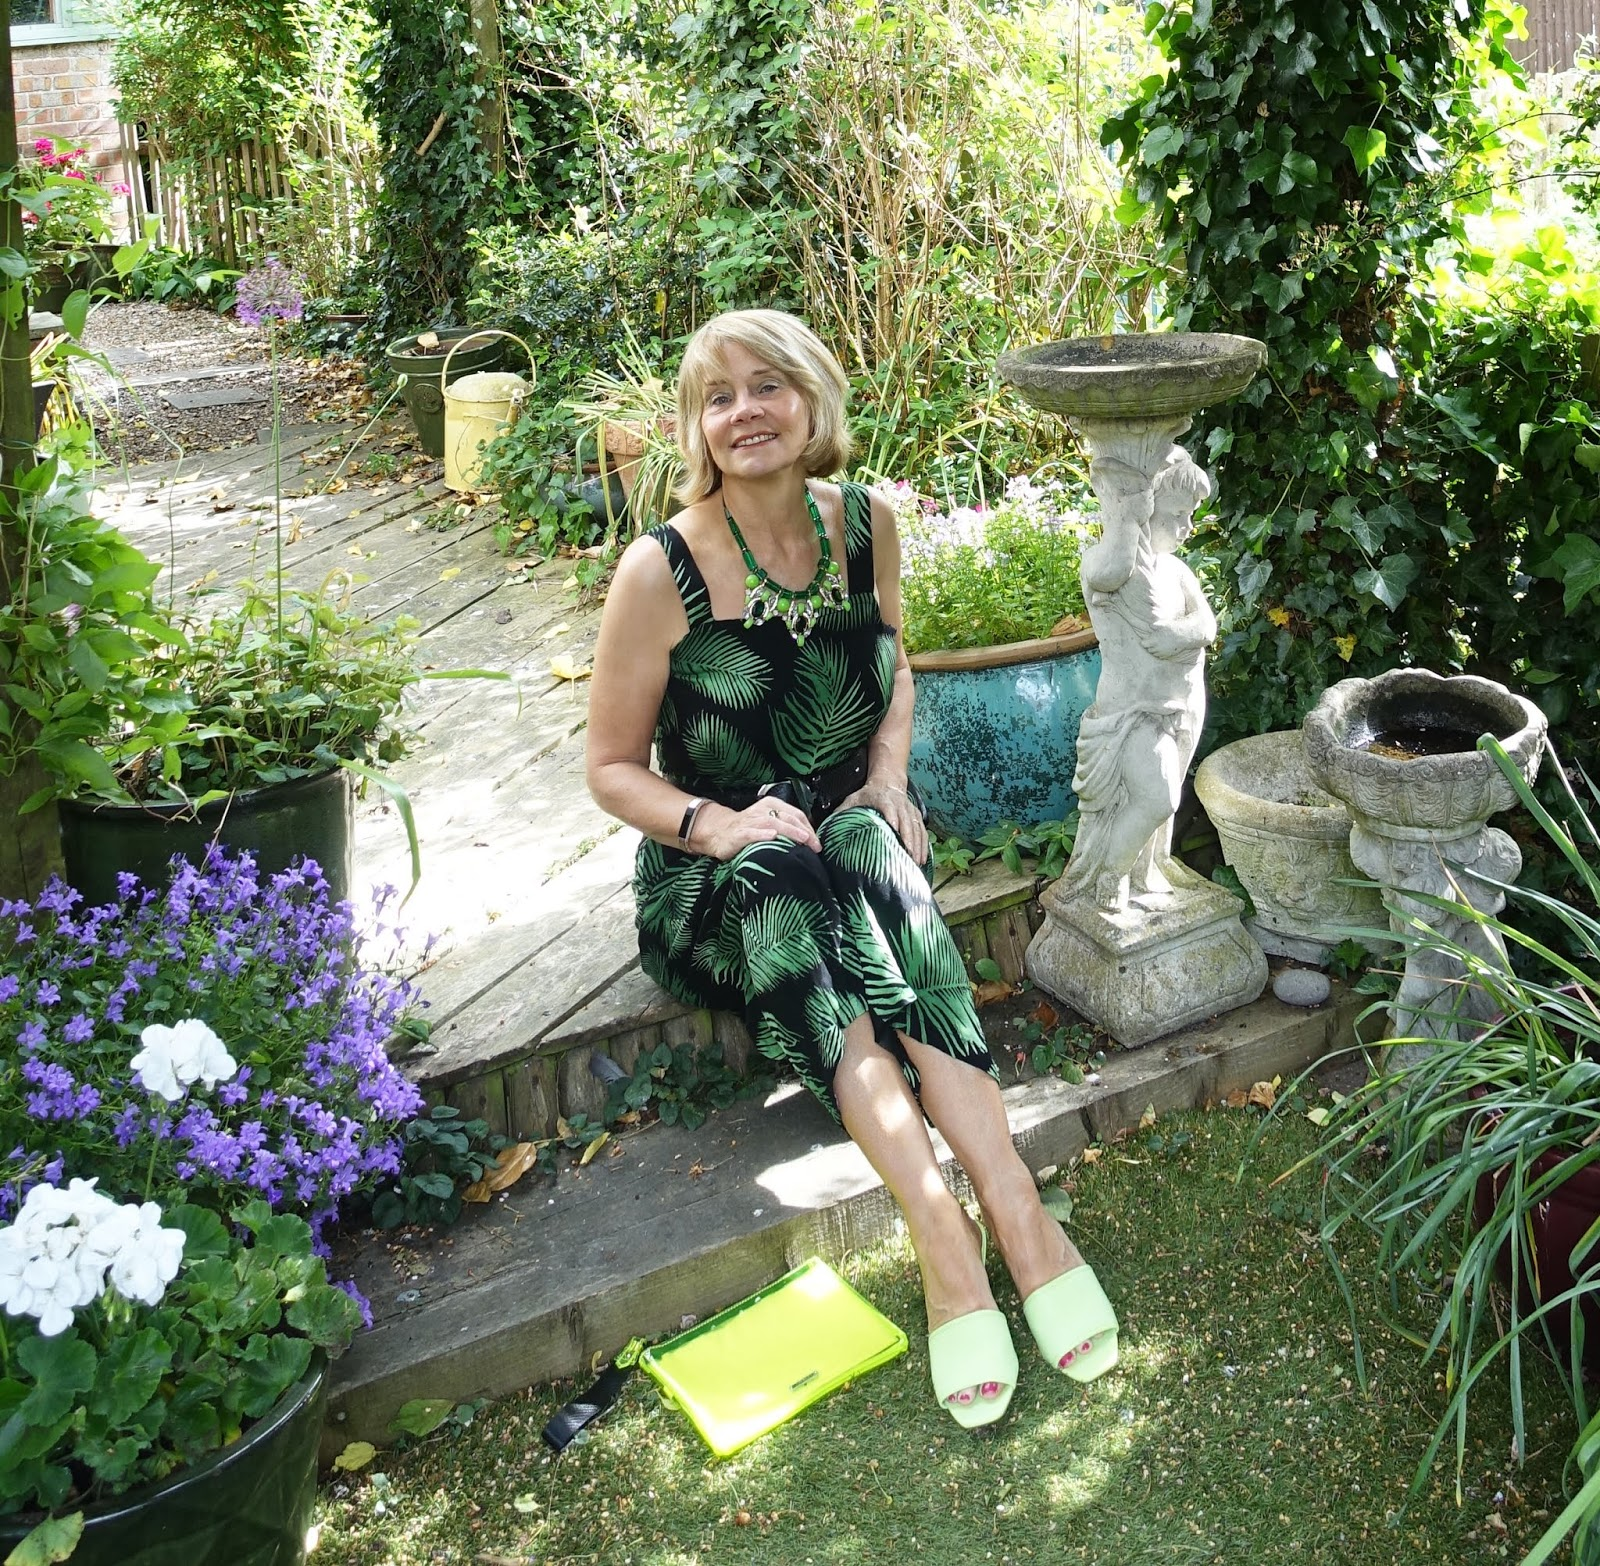 Seated in the garden is This Mutton bloggeer Gail Hanlon in green and black palm print jumpsuit for the Style Not Age Challenge: jungle prints